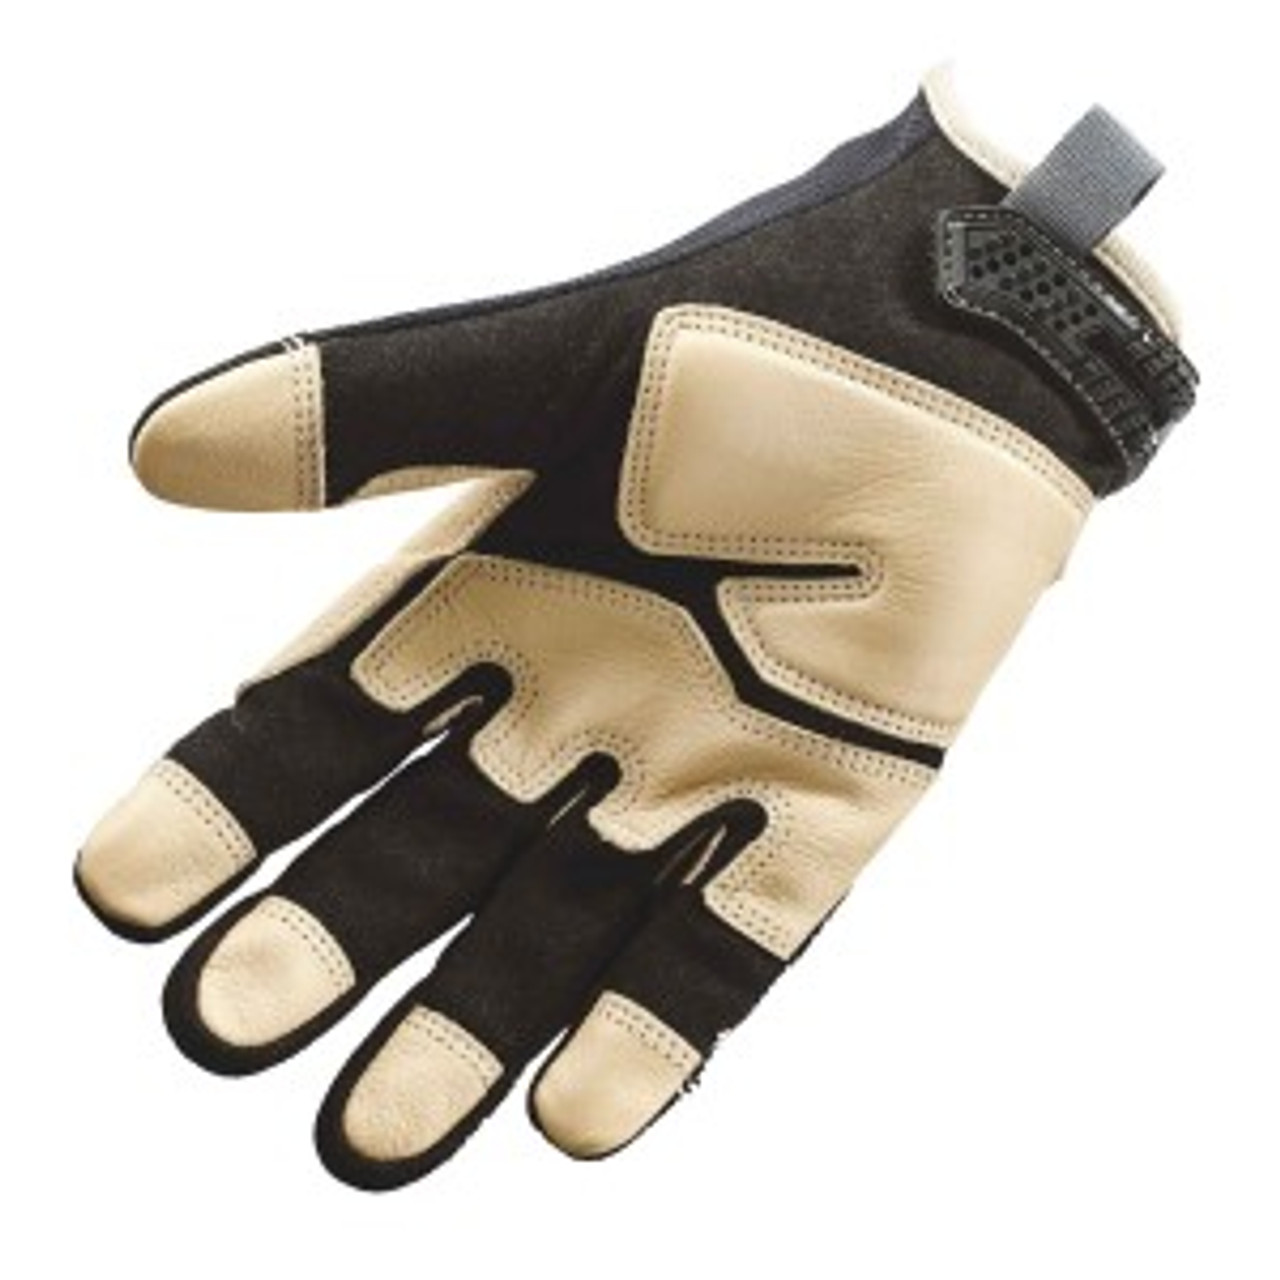 ProFlex® 710LTR Heavy-Duty Leather-Reinforced Gloves (Large)